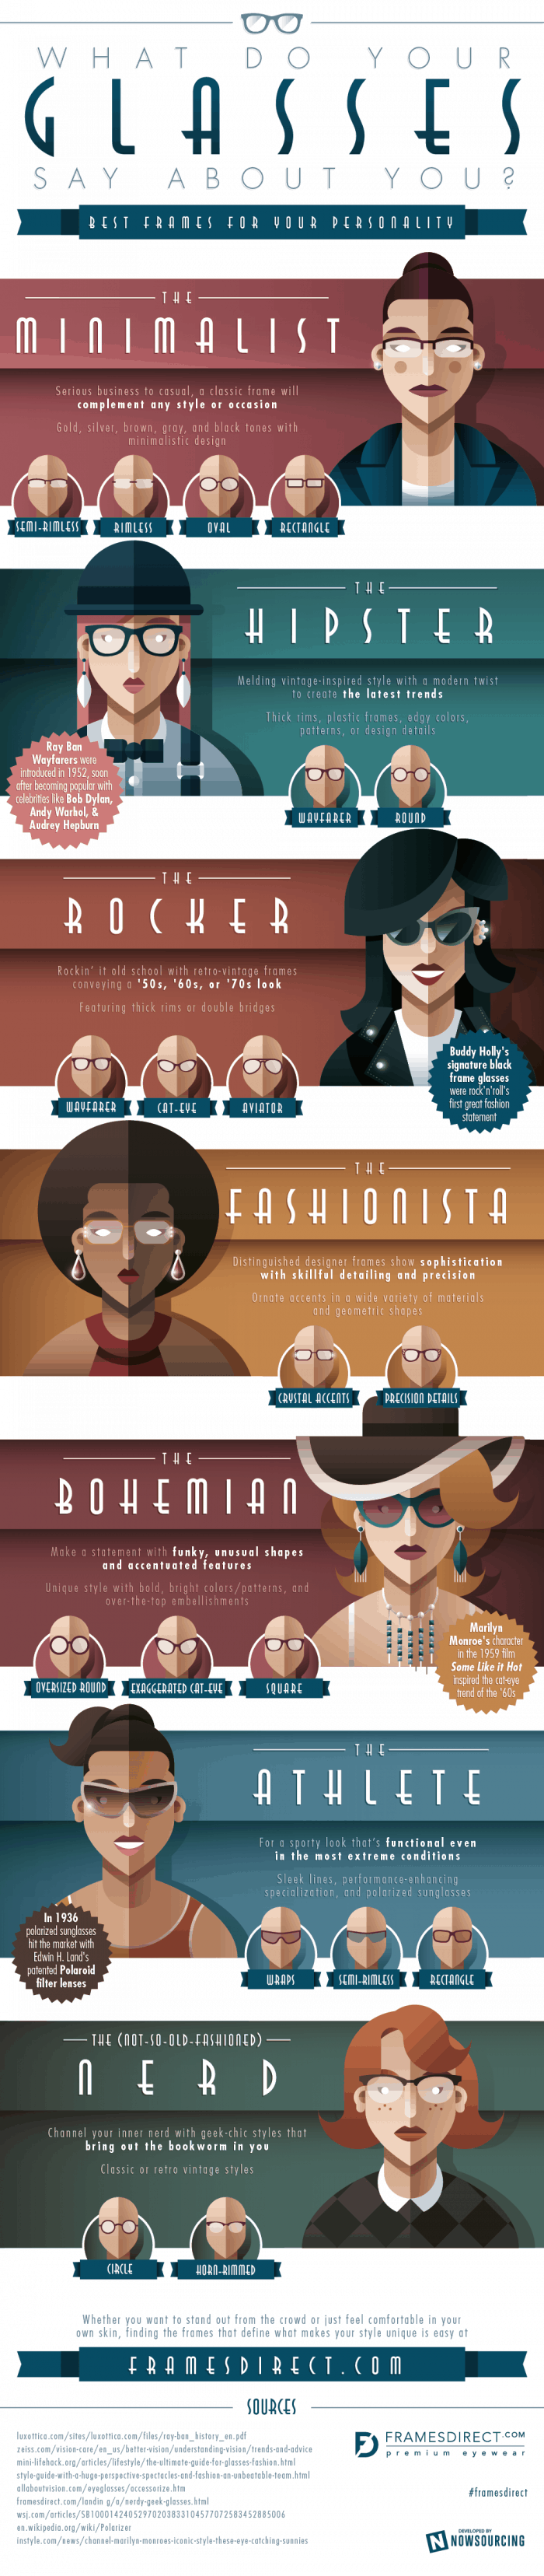 Infographic showing different styles of glasses and how they fit with different personalities